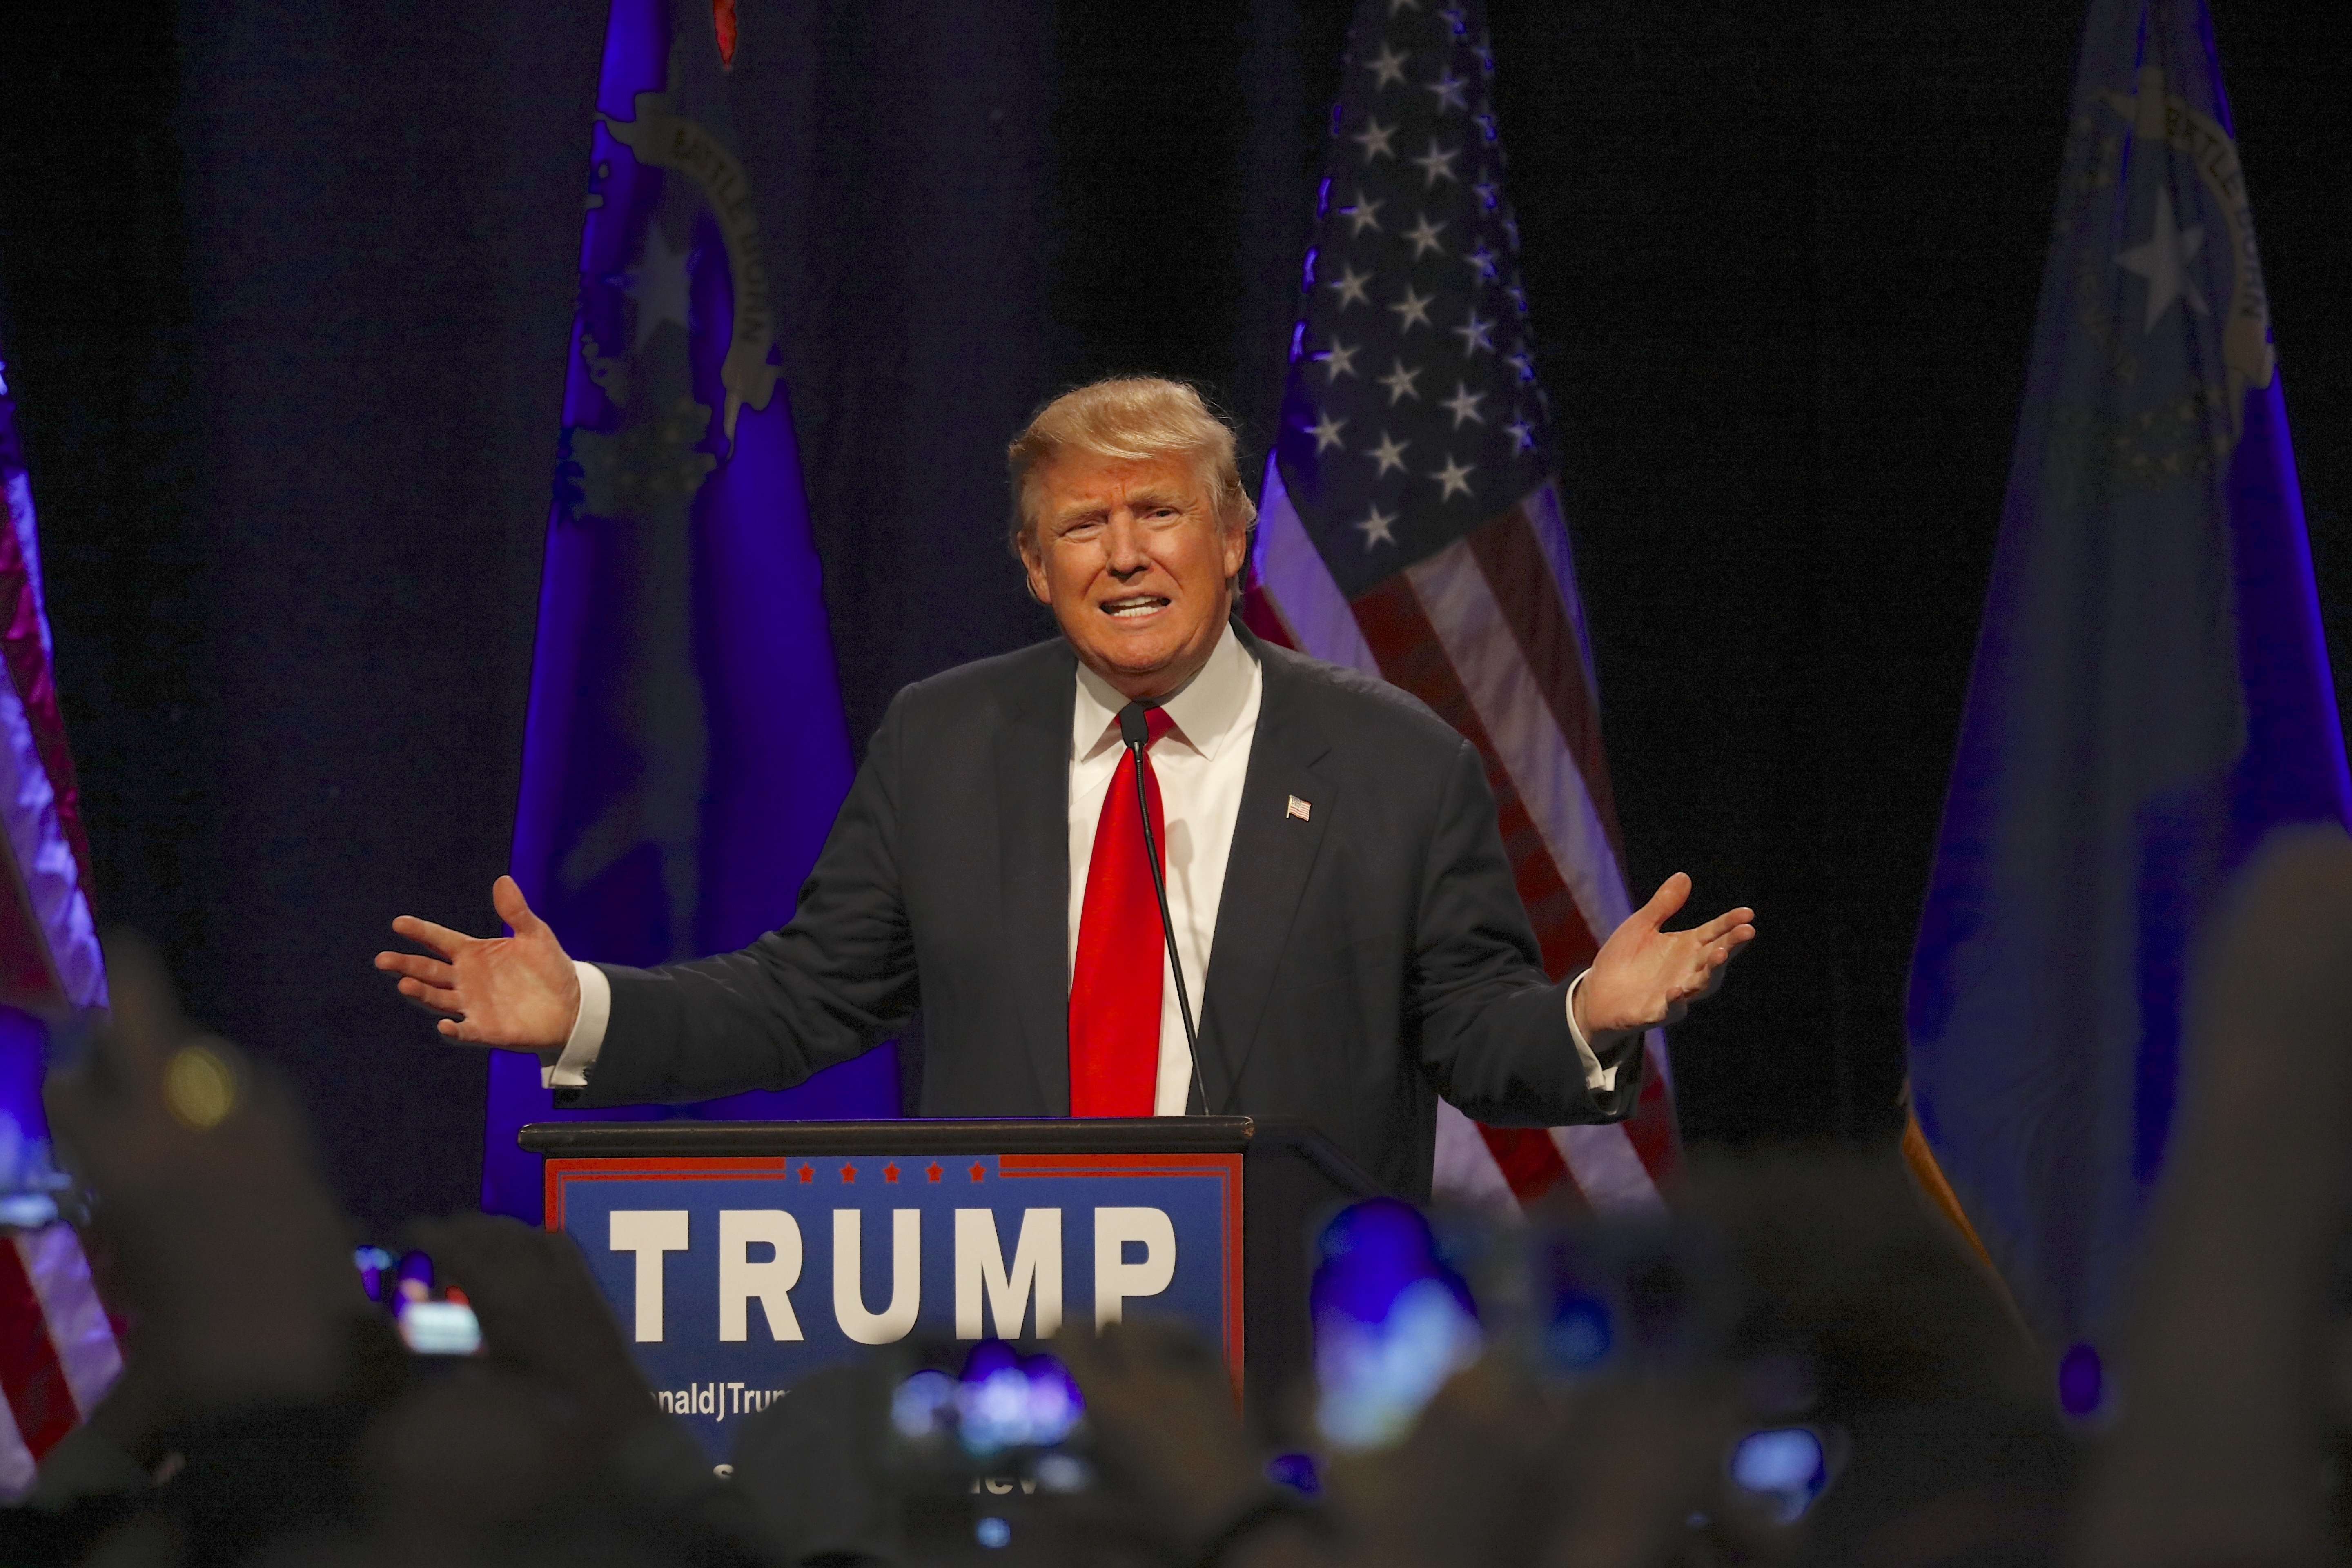 Donald Trump speaks at campaign event at Westgate Las Vegas Resort & Casino | Source: Shutterstock